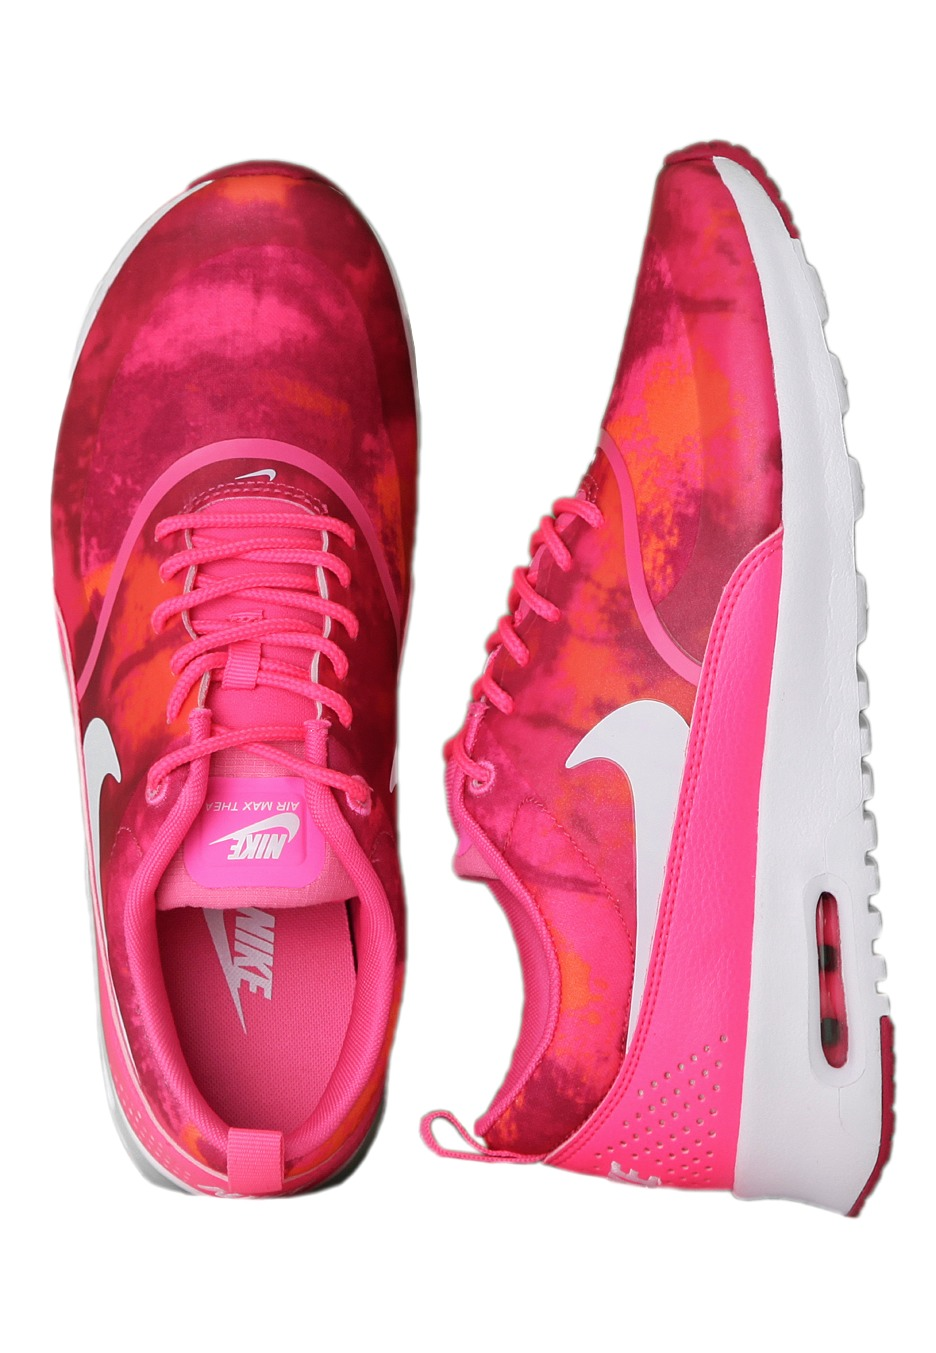 new style 36998 e5213 Nike - Air Max Thea Print Pink PowWhite Fireberry Totally Orange - Girl  Shoes - Impericon.com UK